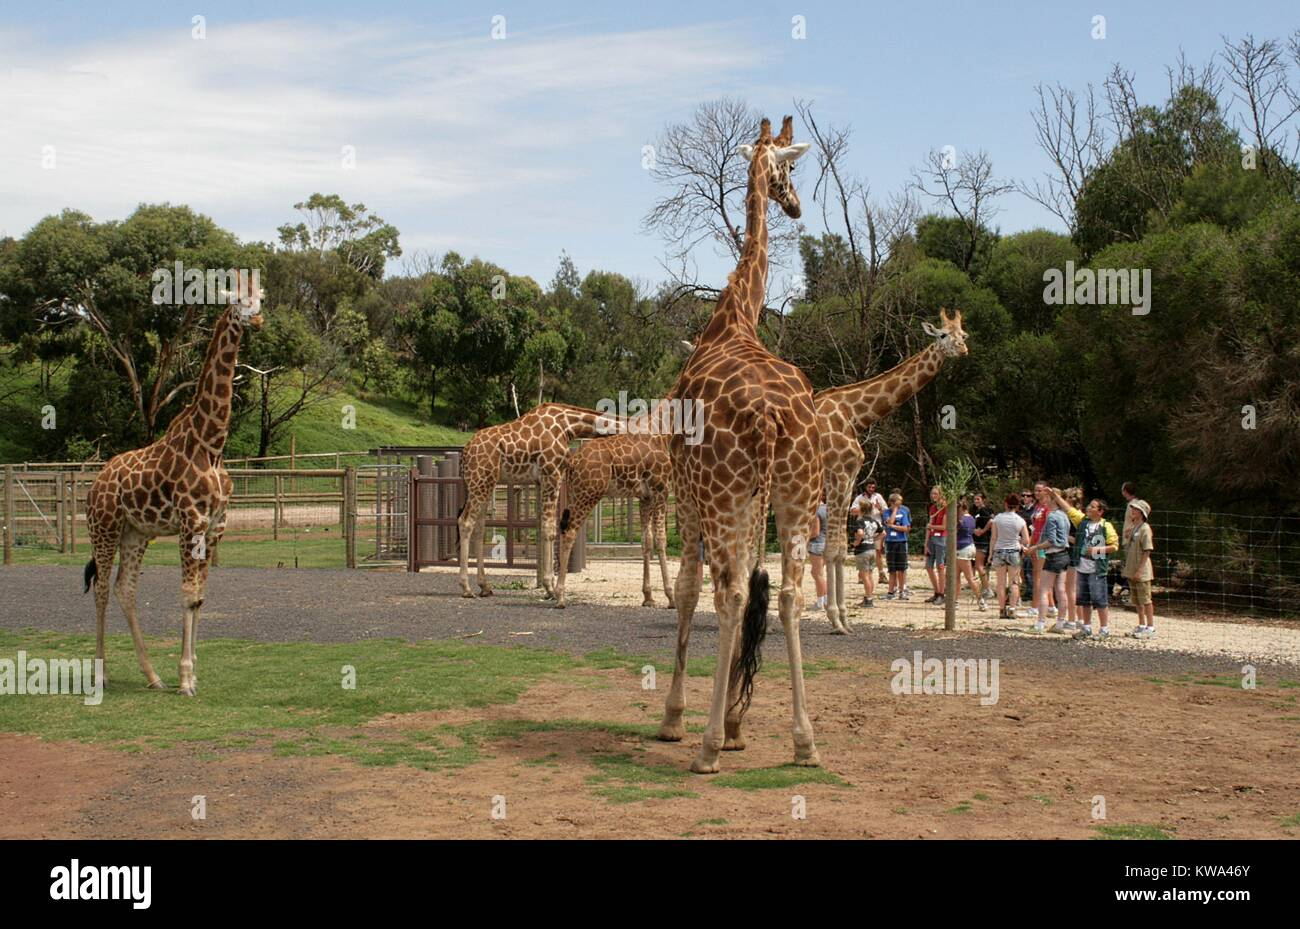 A family of giraffes watching visitors at the Werribee Open Range Zoo, Melbourne, Australia. Stock Photo